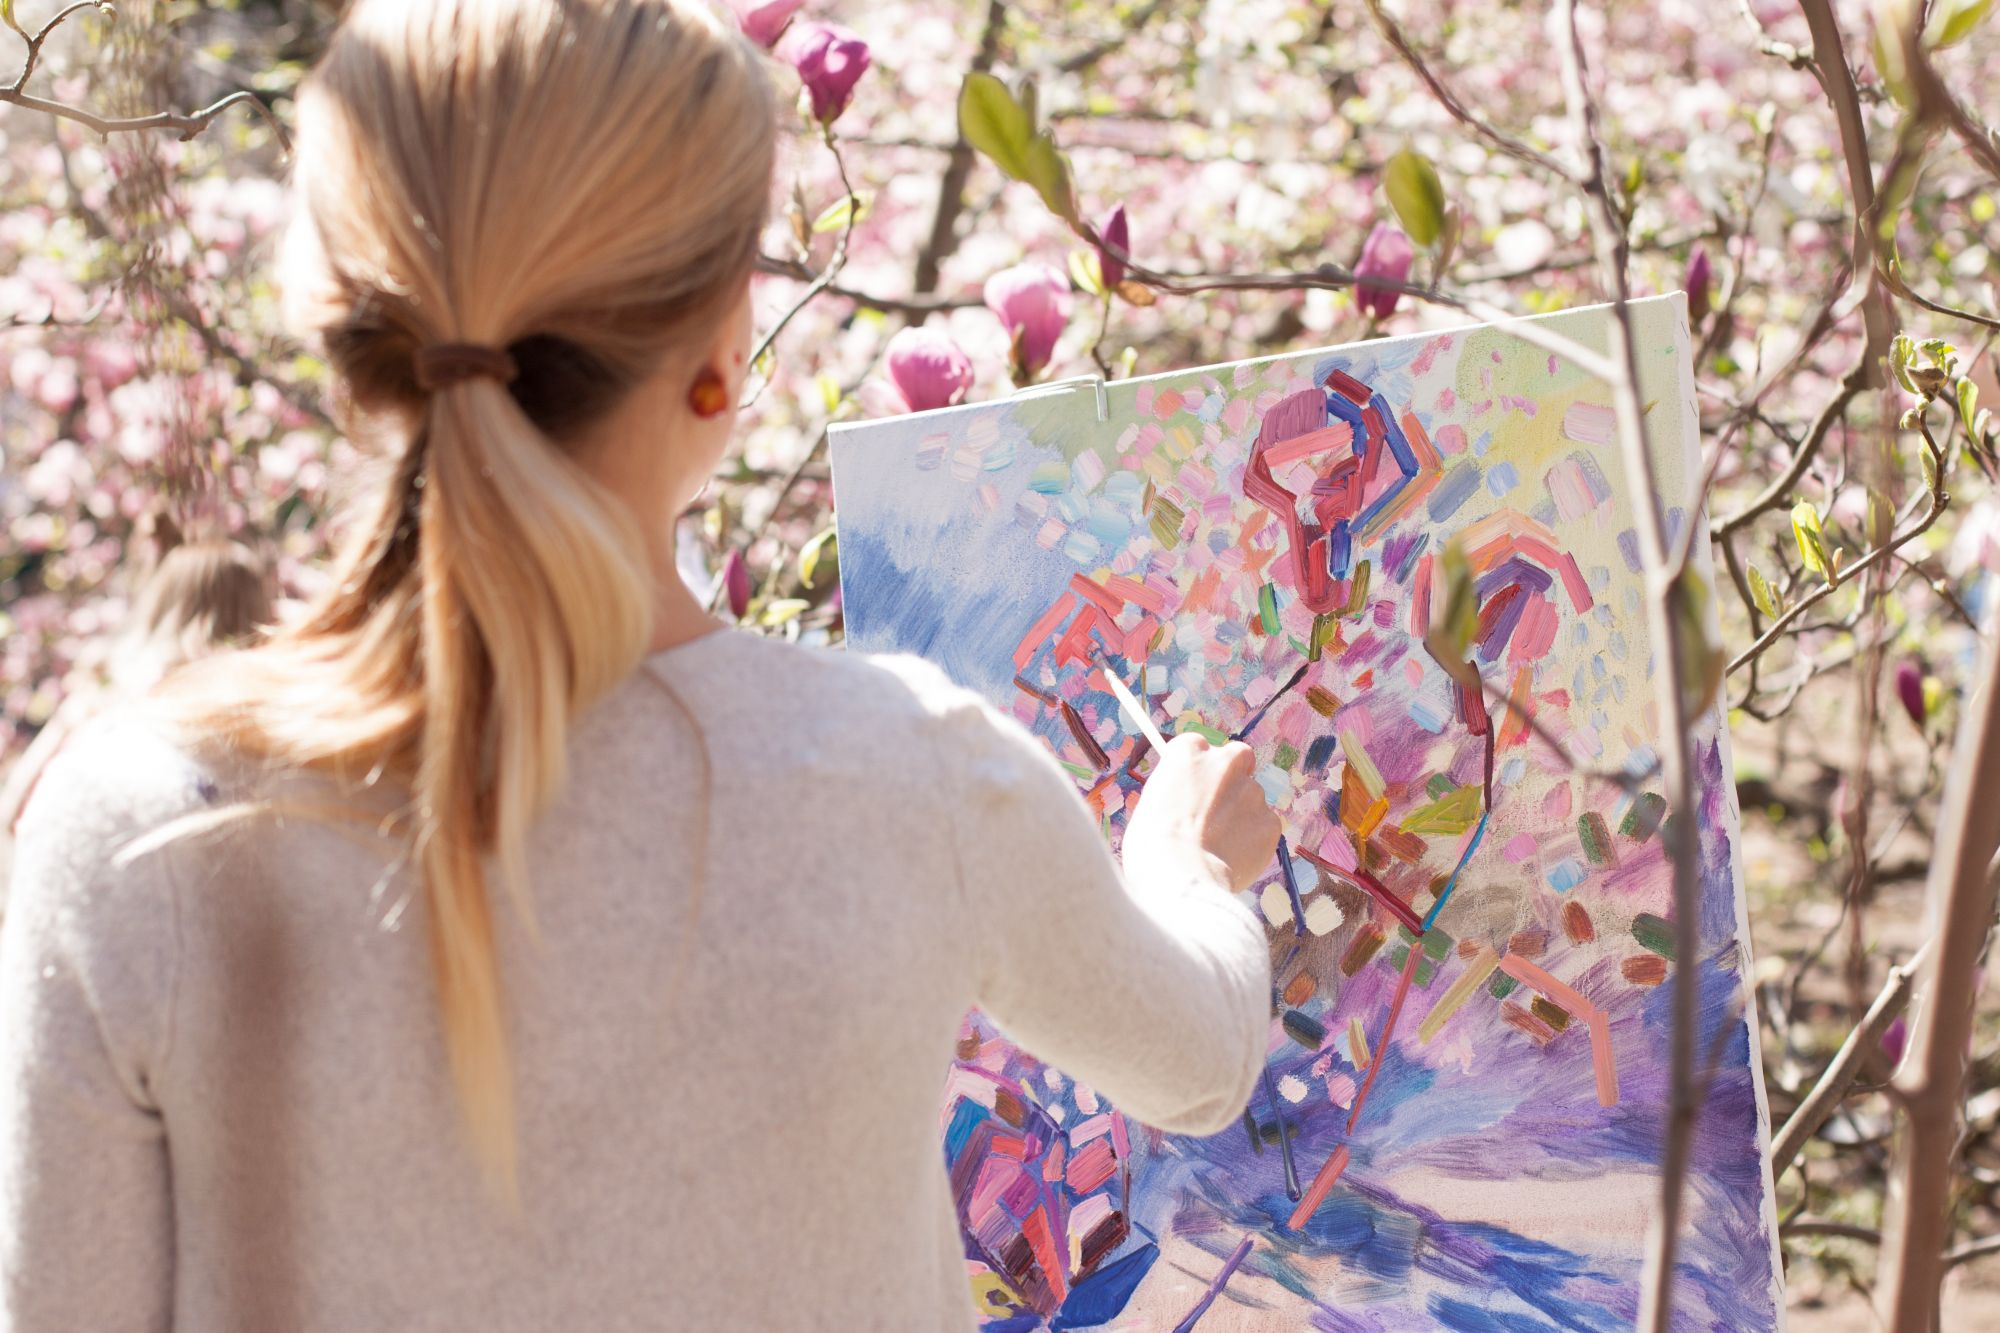 How To Protect Your Creativity And Passion From Burnout